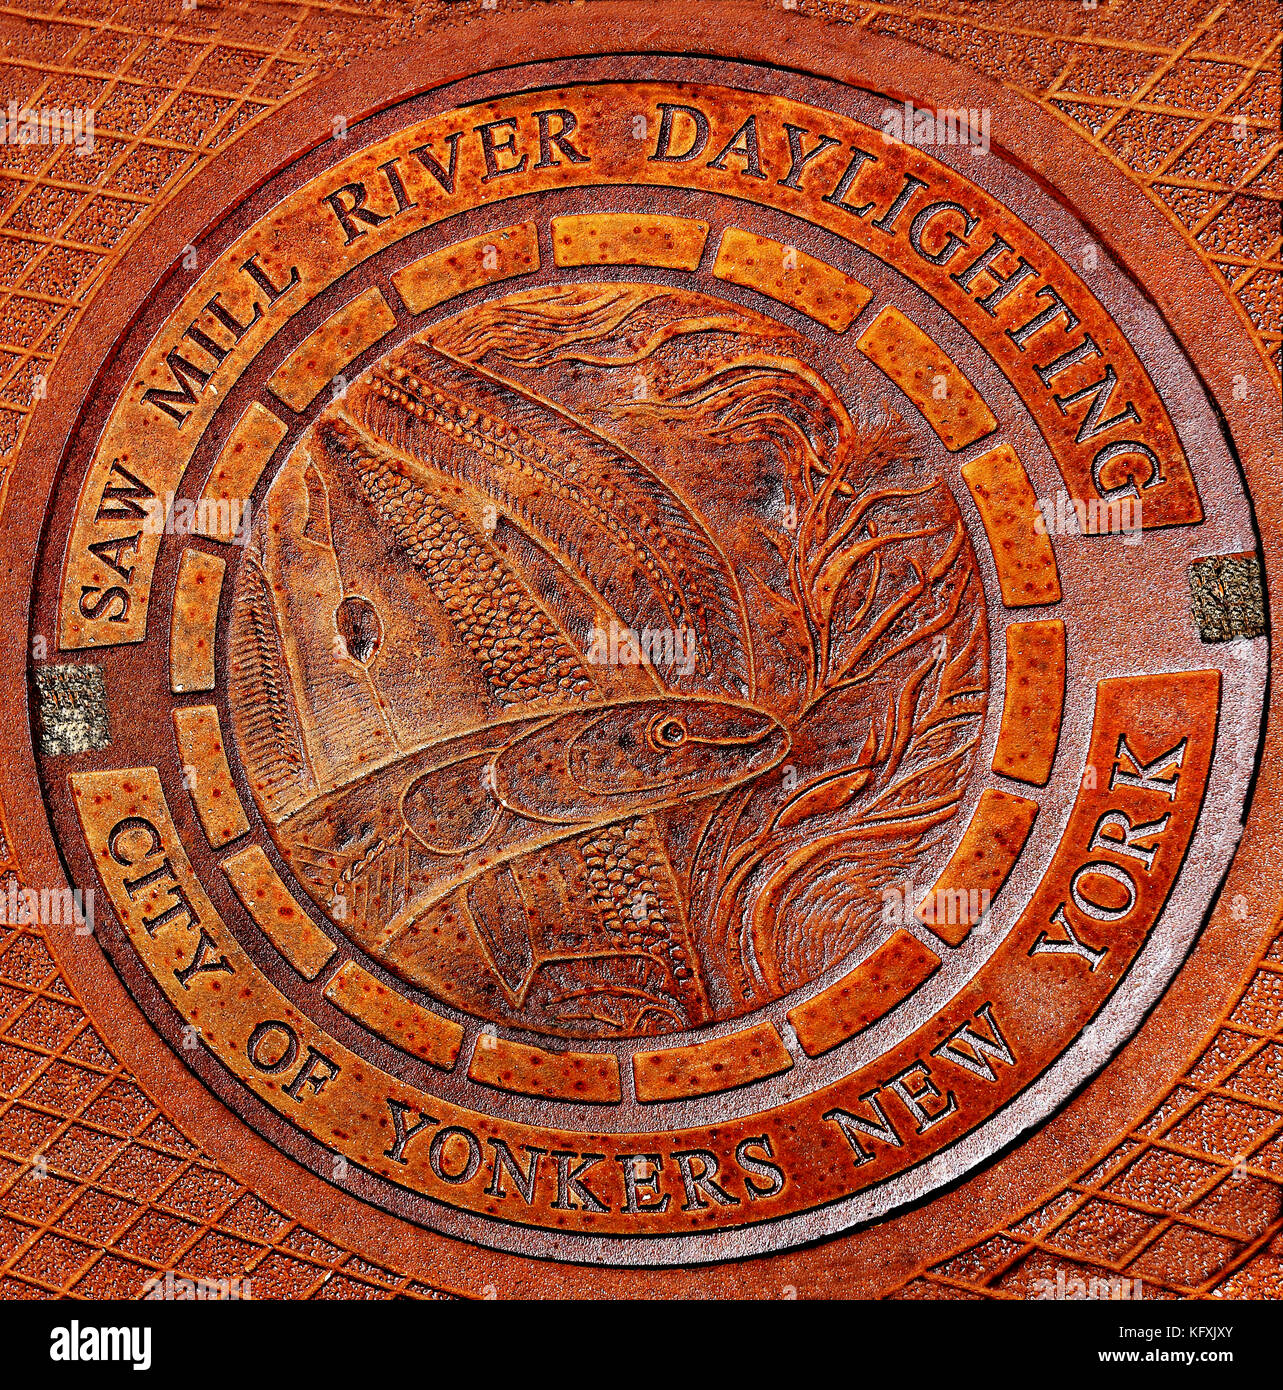 Memorial manhole cover downtown Yonkers New York - Stock Image